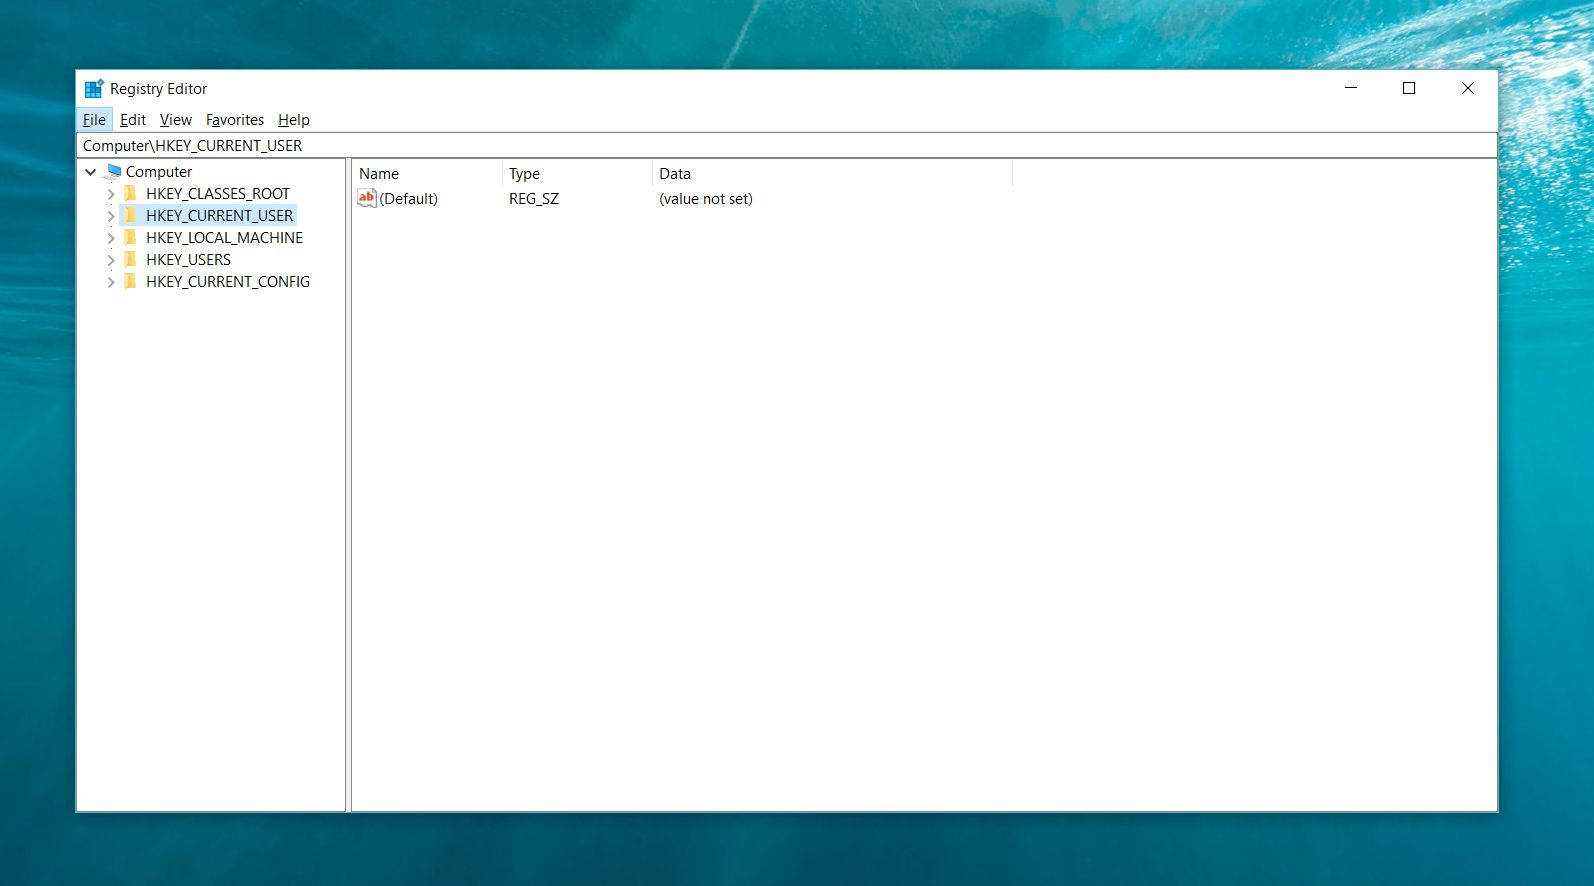 how to see registry in windows 10